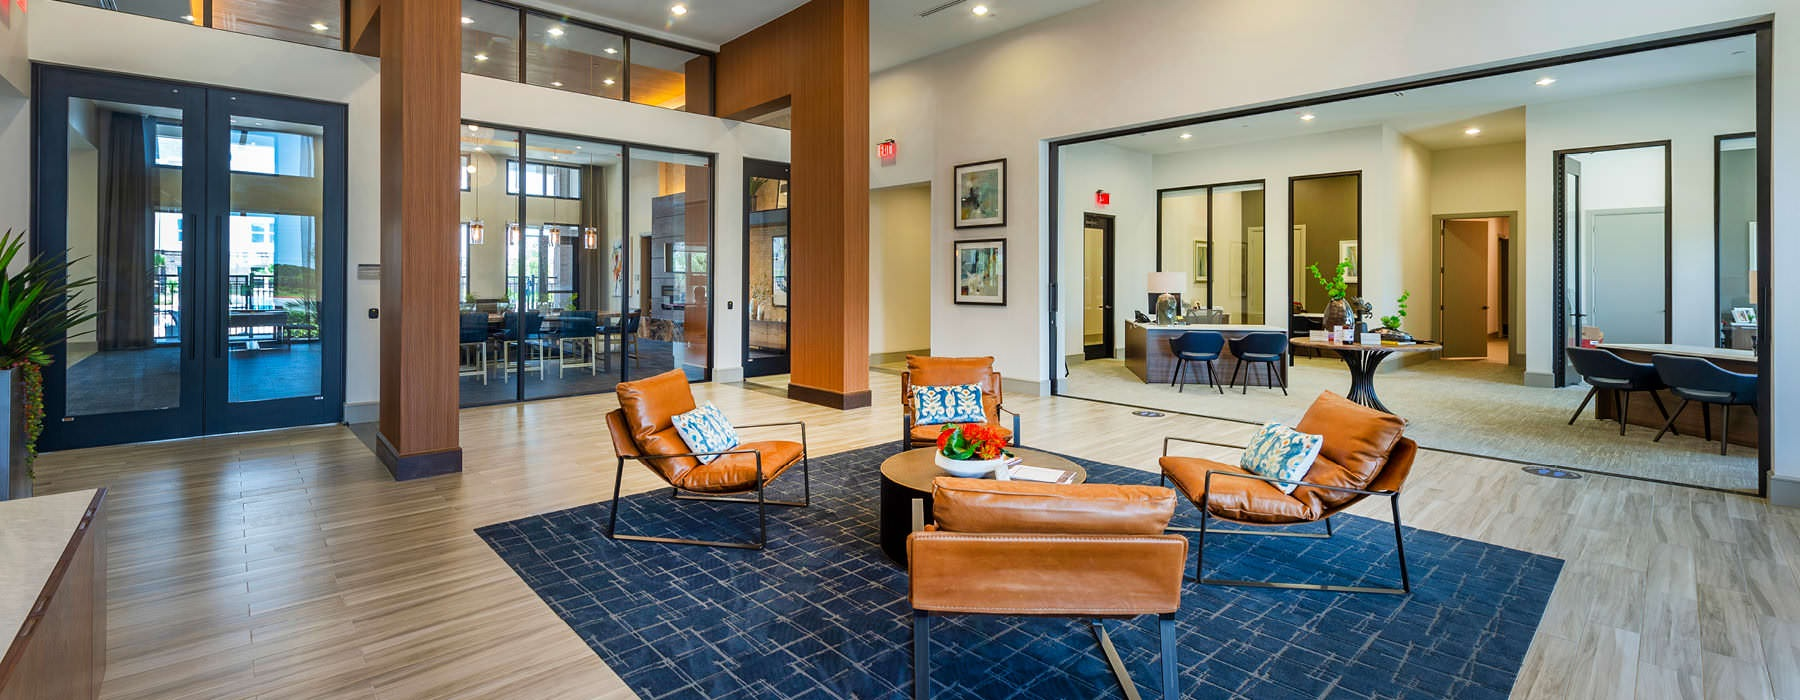 spacious clubhouse with ample lighting